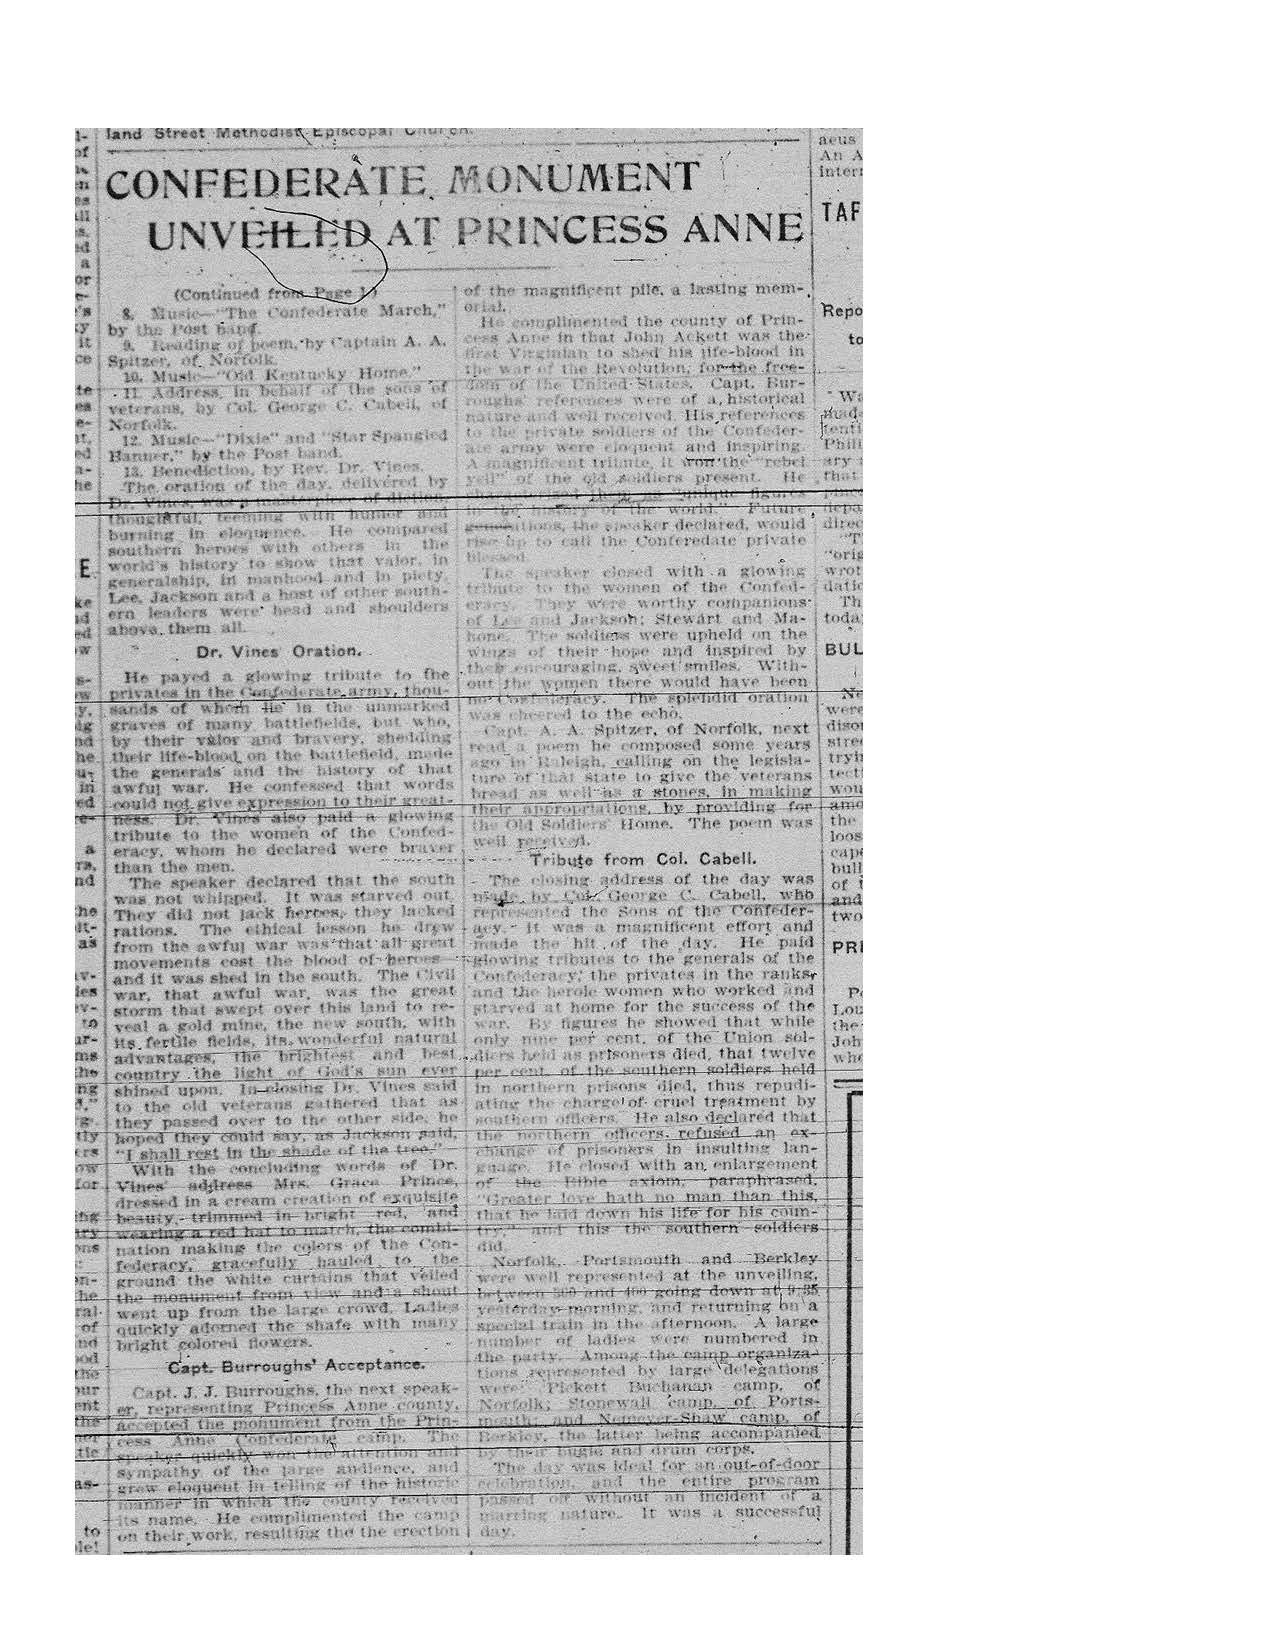 Virginian-Pilot November 16, 1905 article on the dedication of the Princess Anne County Confederate Monument (page 2)